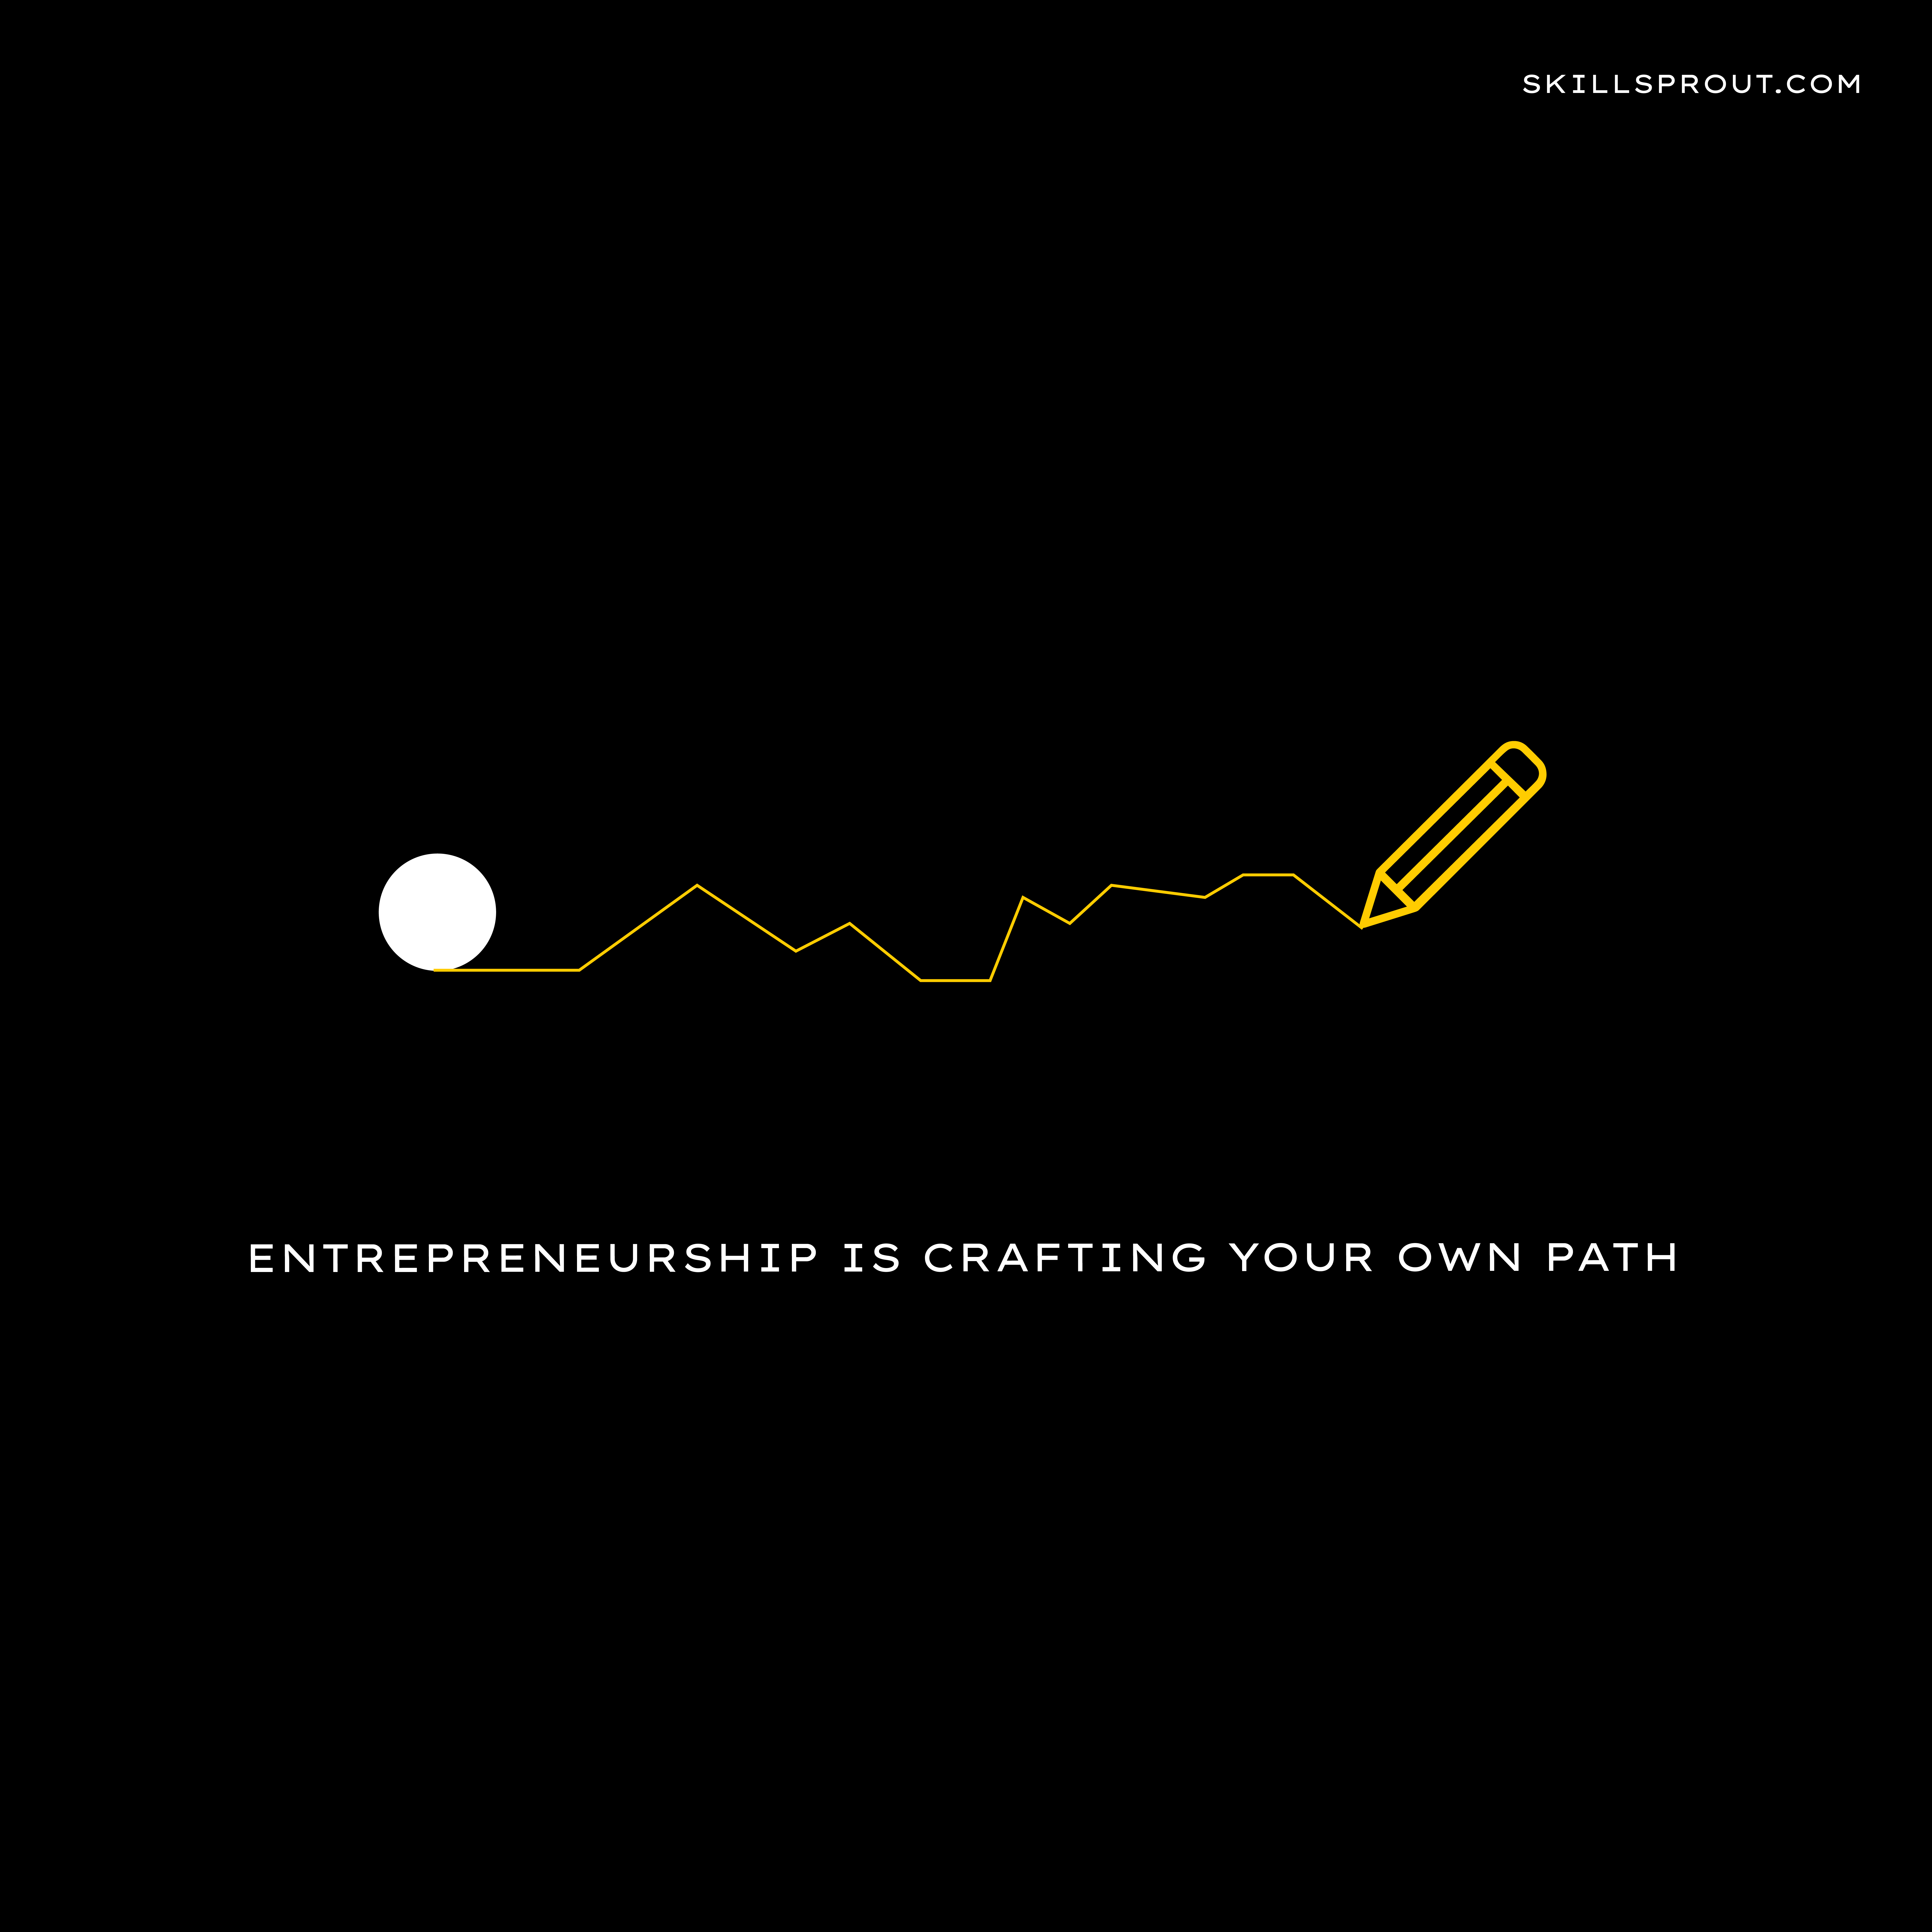 Entrepreneurship is crafting your own path